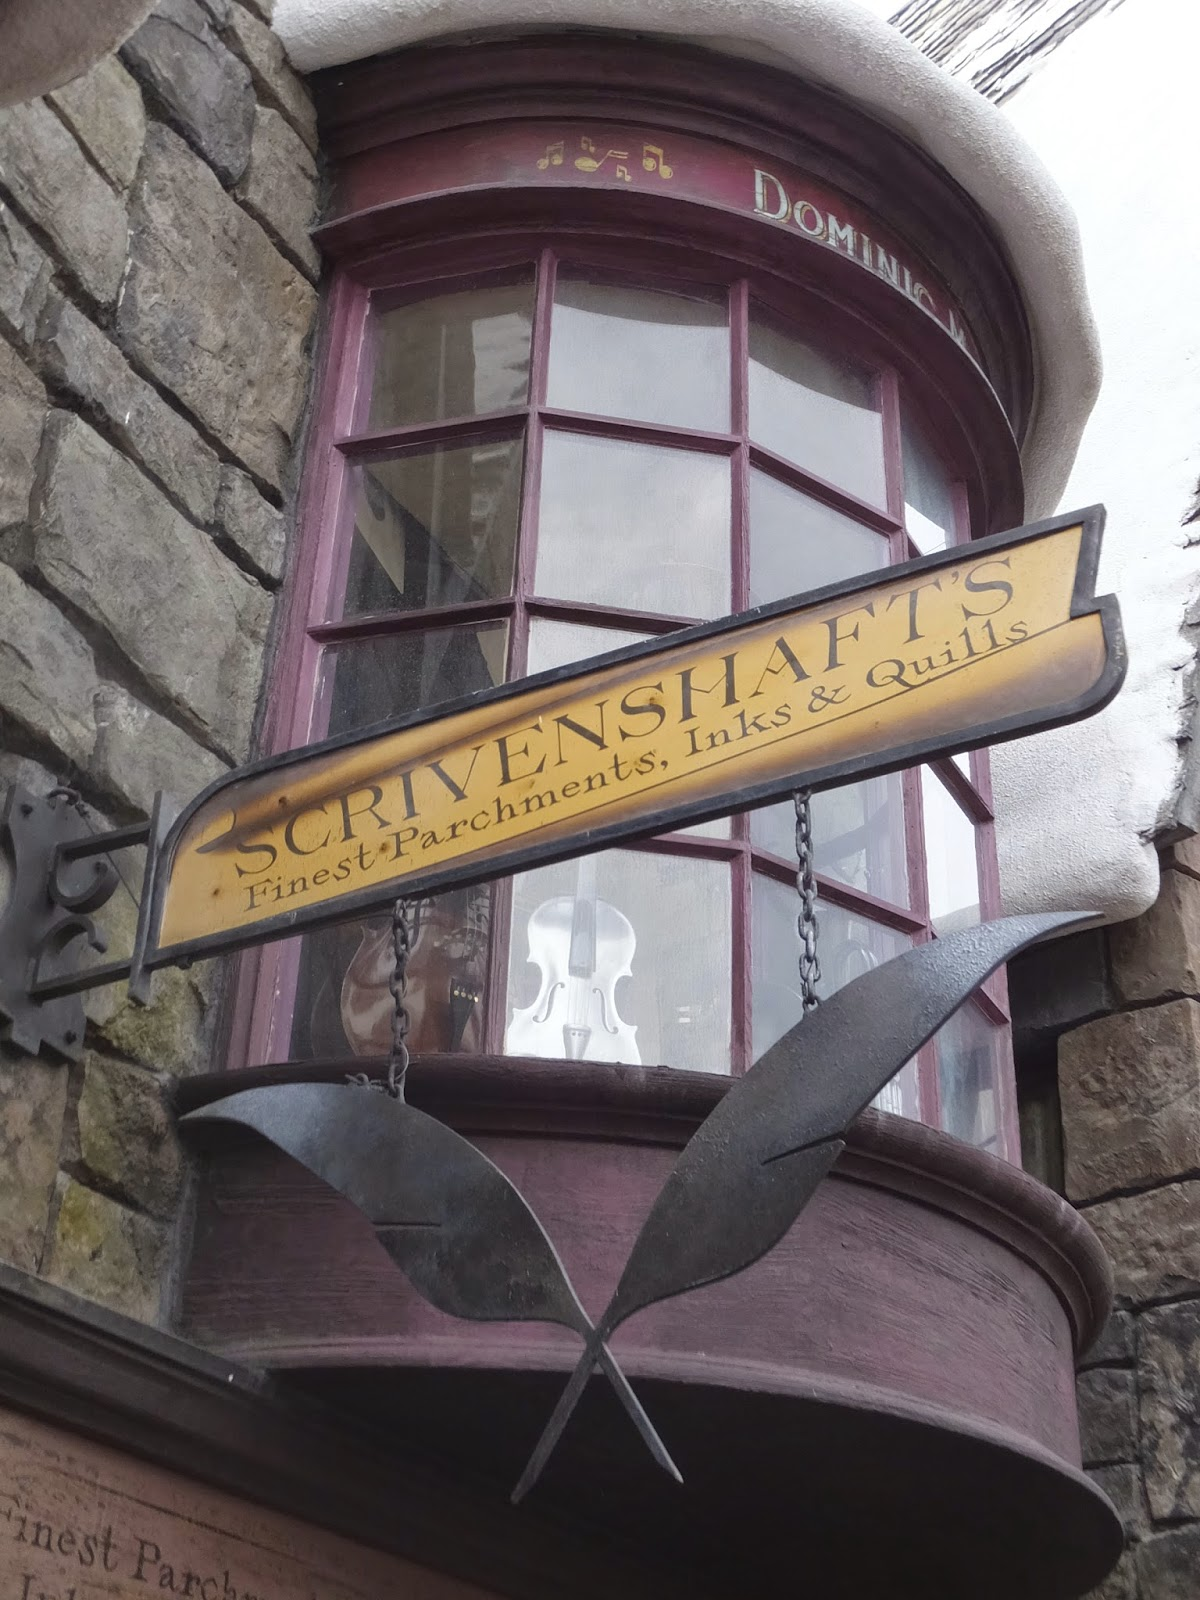 A Crafty Chick Diagon Alley Flourish Amp Blotts And